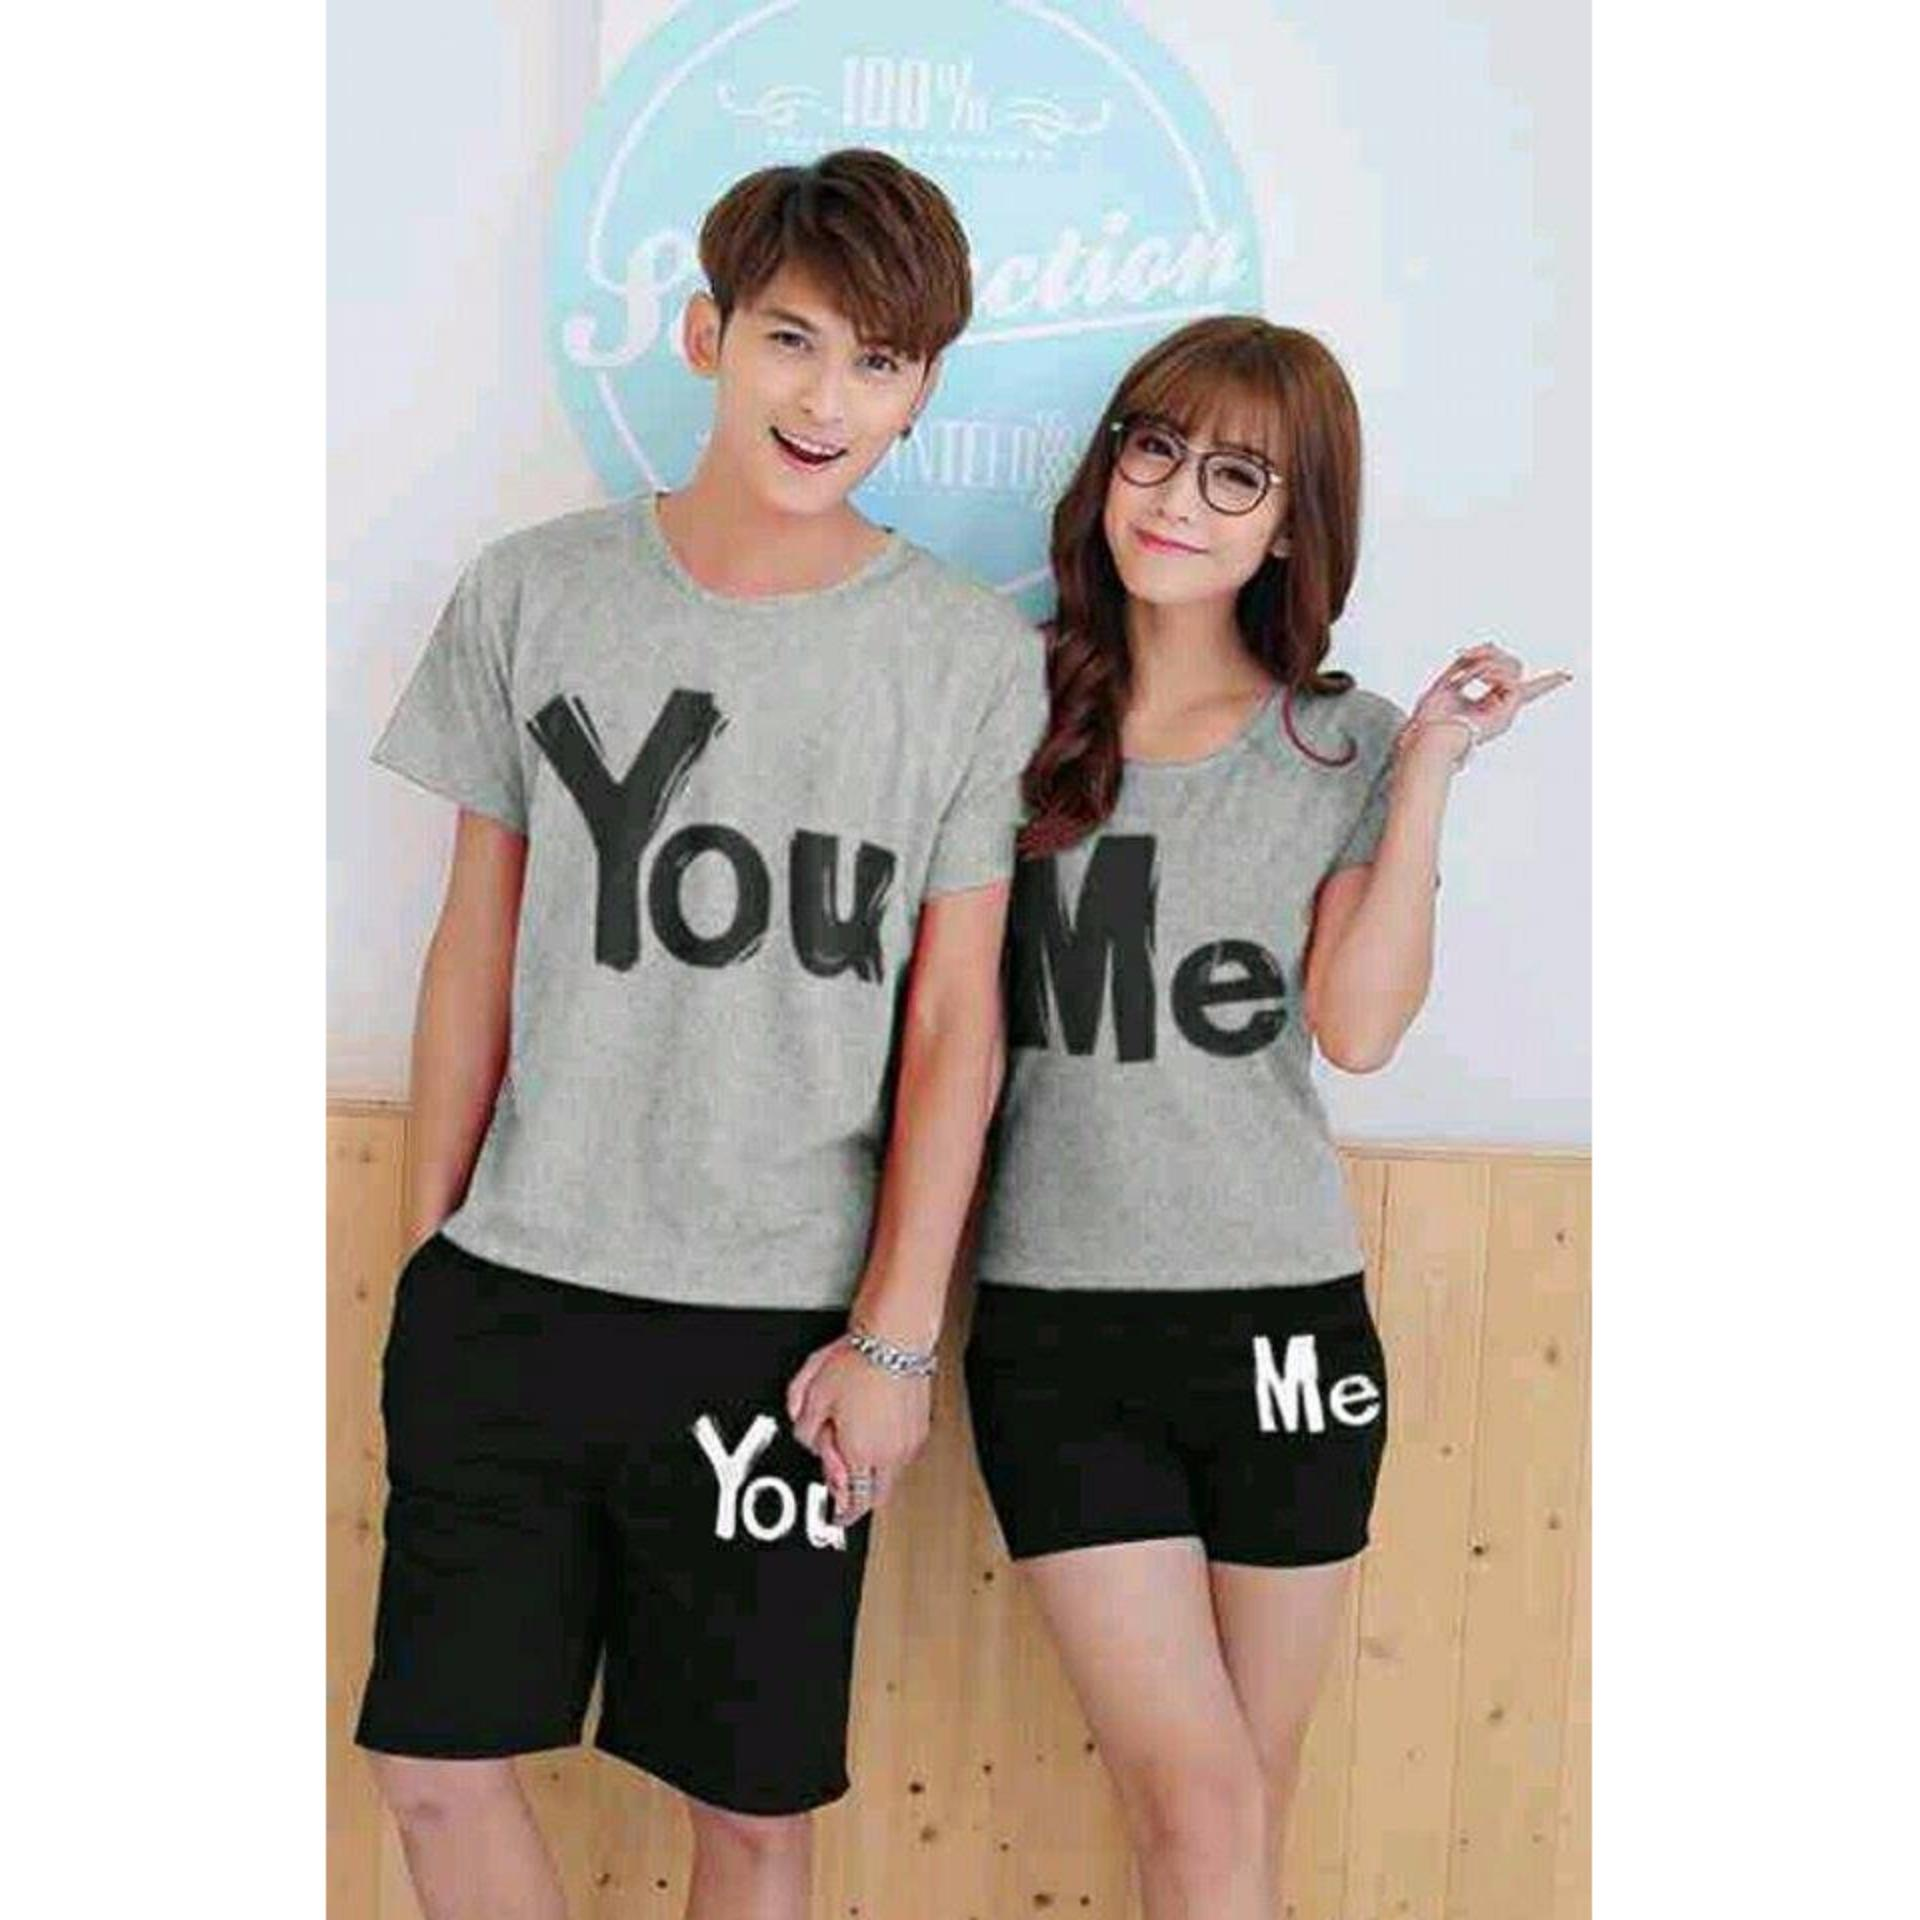 Promo Legionshop Trendy Couple Murah Stelan Kaos Pasangan T Shirt Couple You Me Maroon Black Baju Celana Di Indonesia